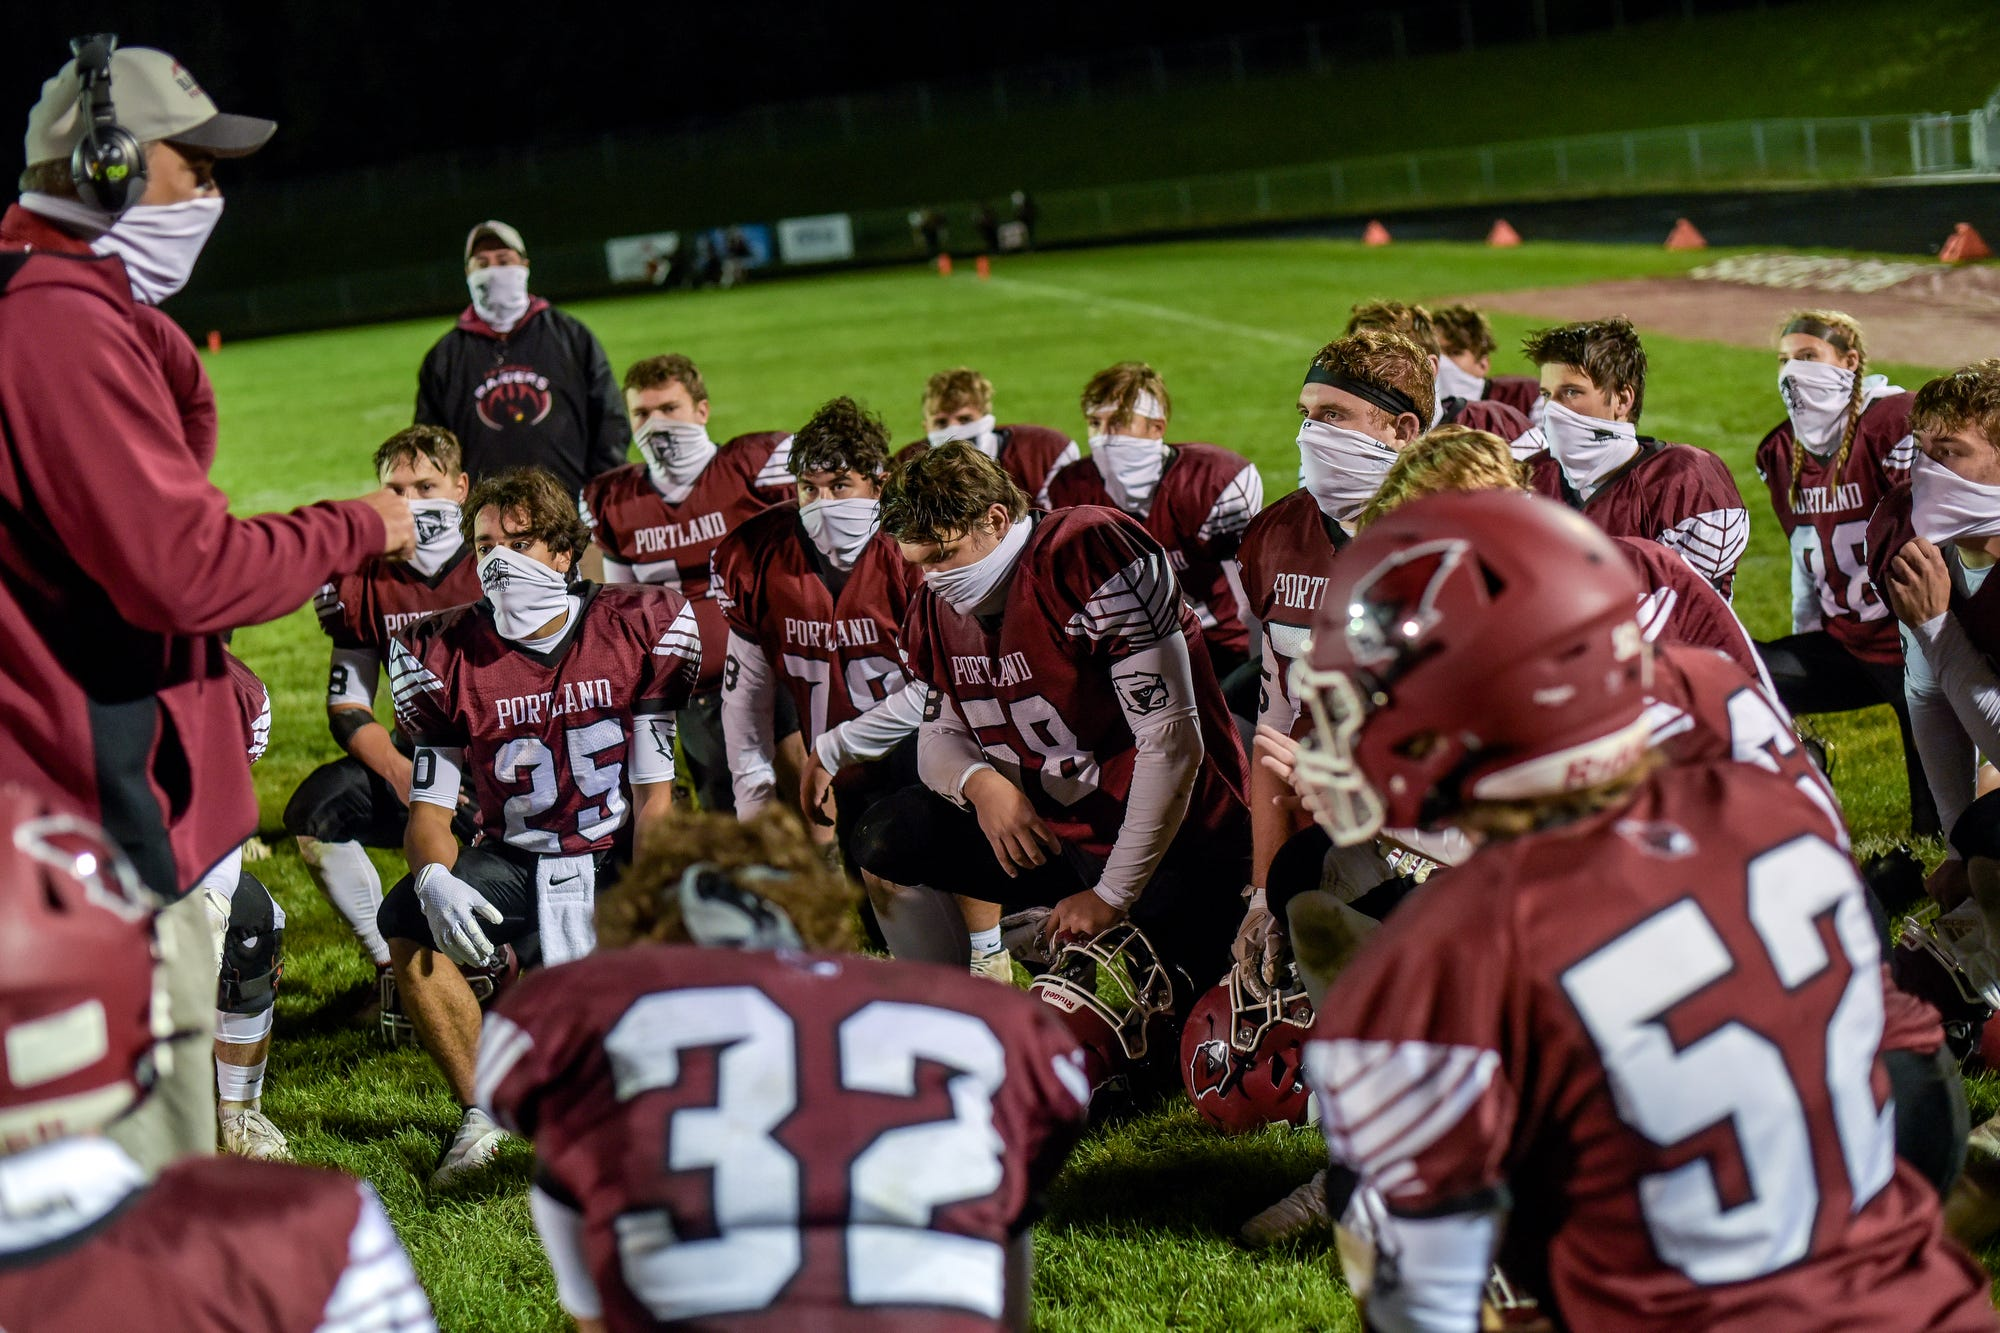 High school football is the new battleground of COVID-19 school reopenings